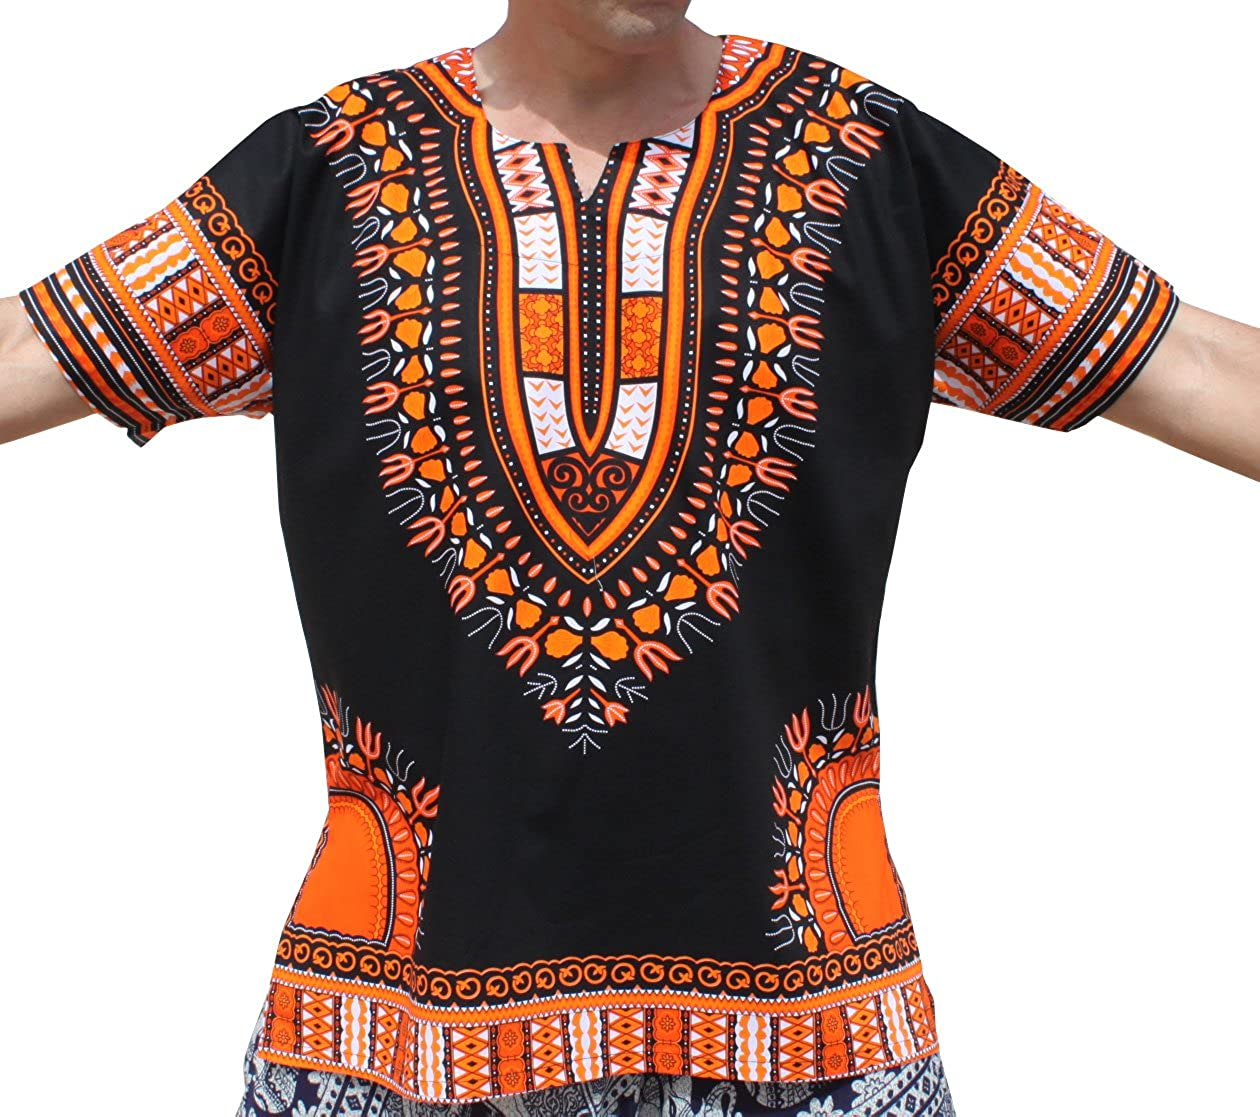 RaanPahMuang Brand Unisex Bright Black Cotton Africa Dashiki Shirt Plain Front